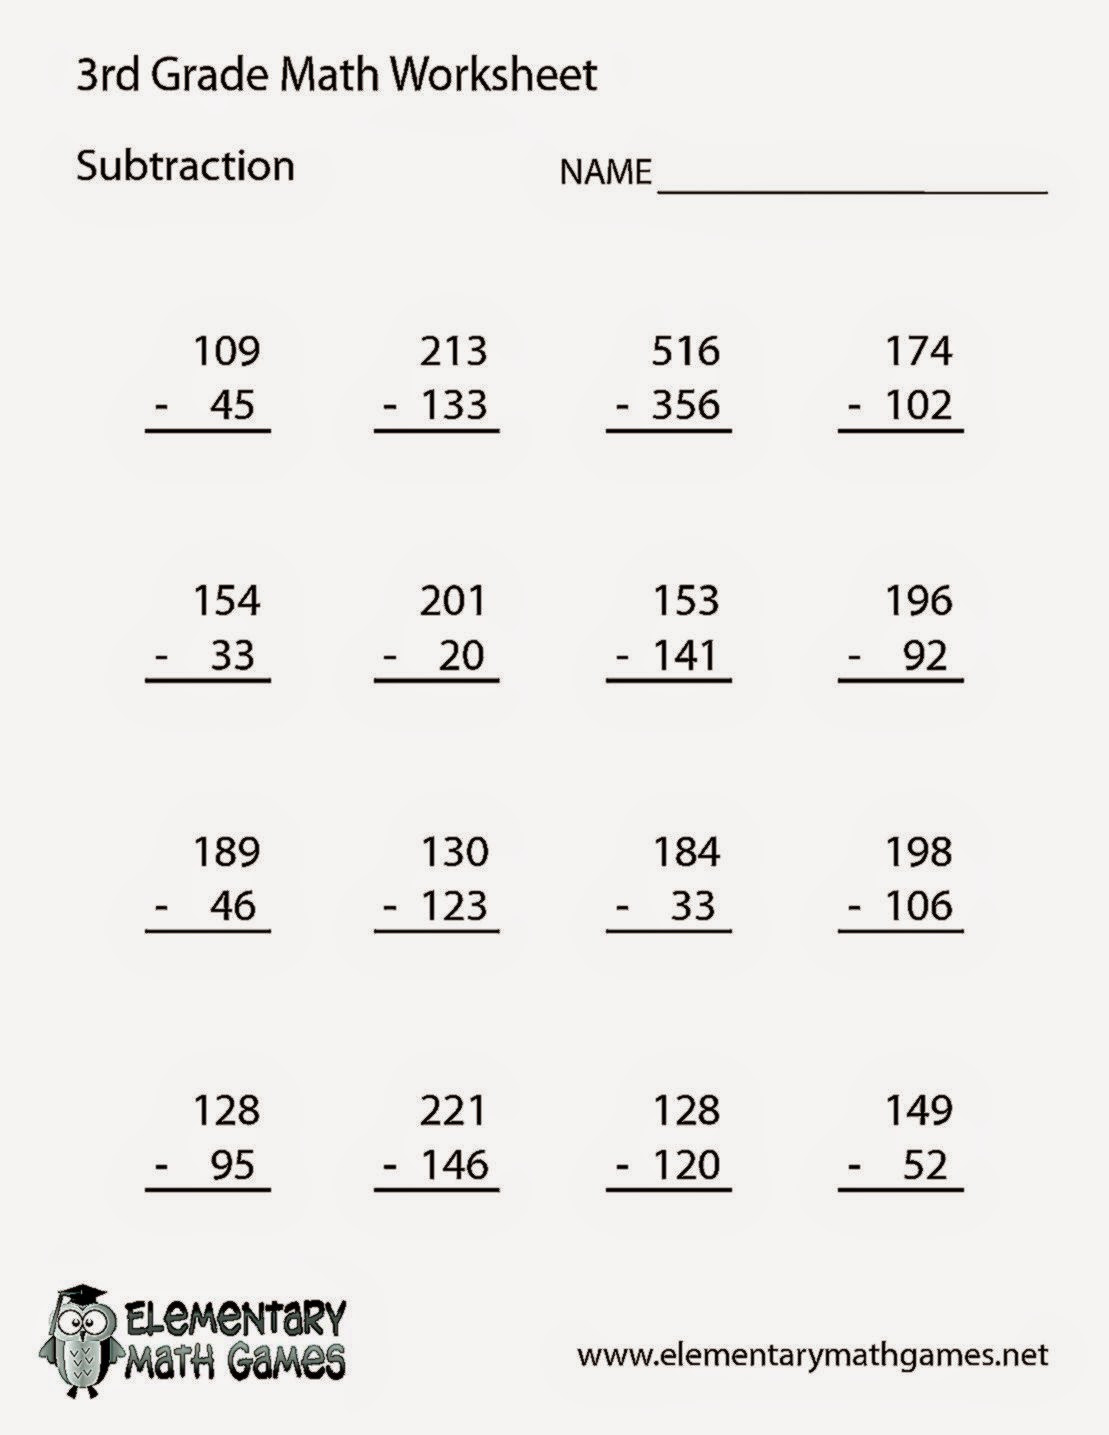 Estimating Sums Worksheets 3rd Grade 7th Grade Math Estimation Worksheetsml Math Estimation